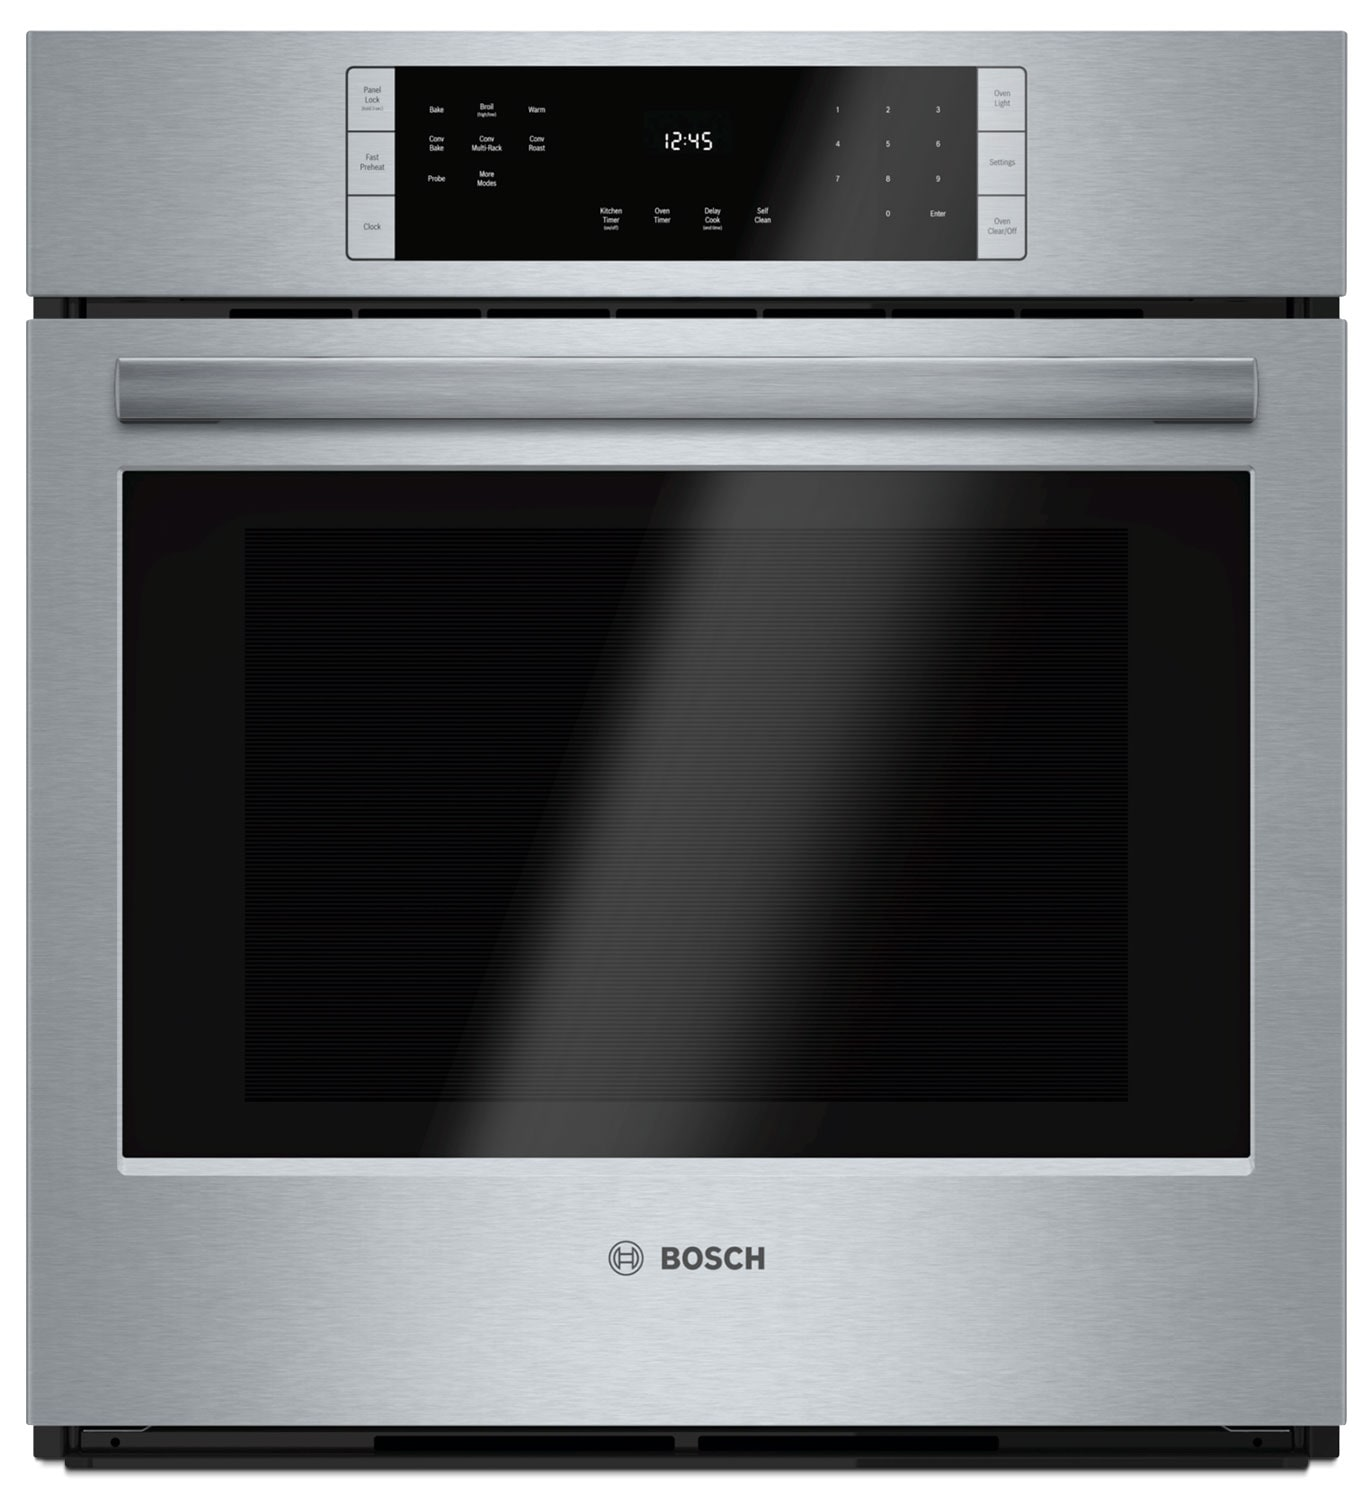 Cooking Products - Bosch Stainless Steel Wall Oven (3.9 Cu. Ft.) - HBN8451UC